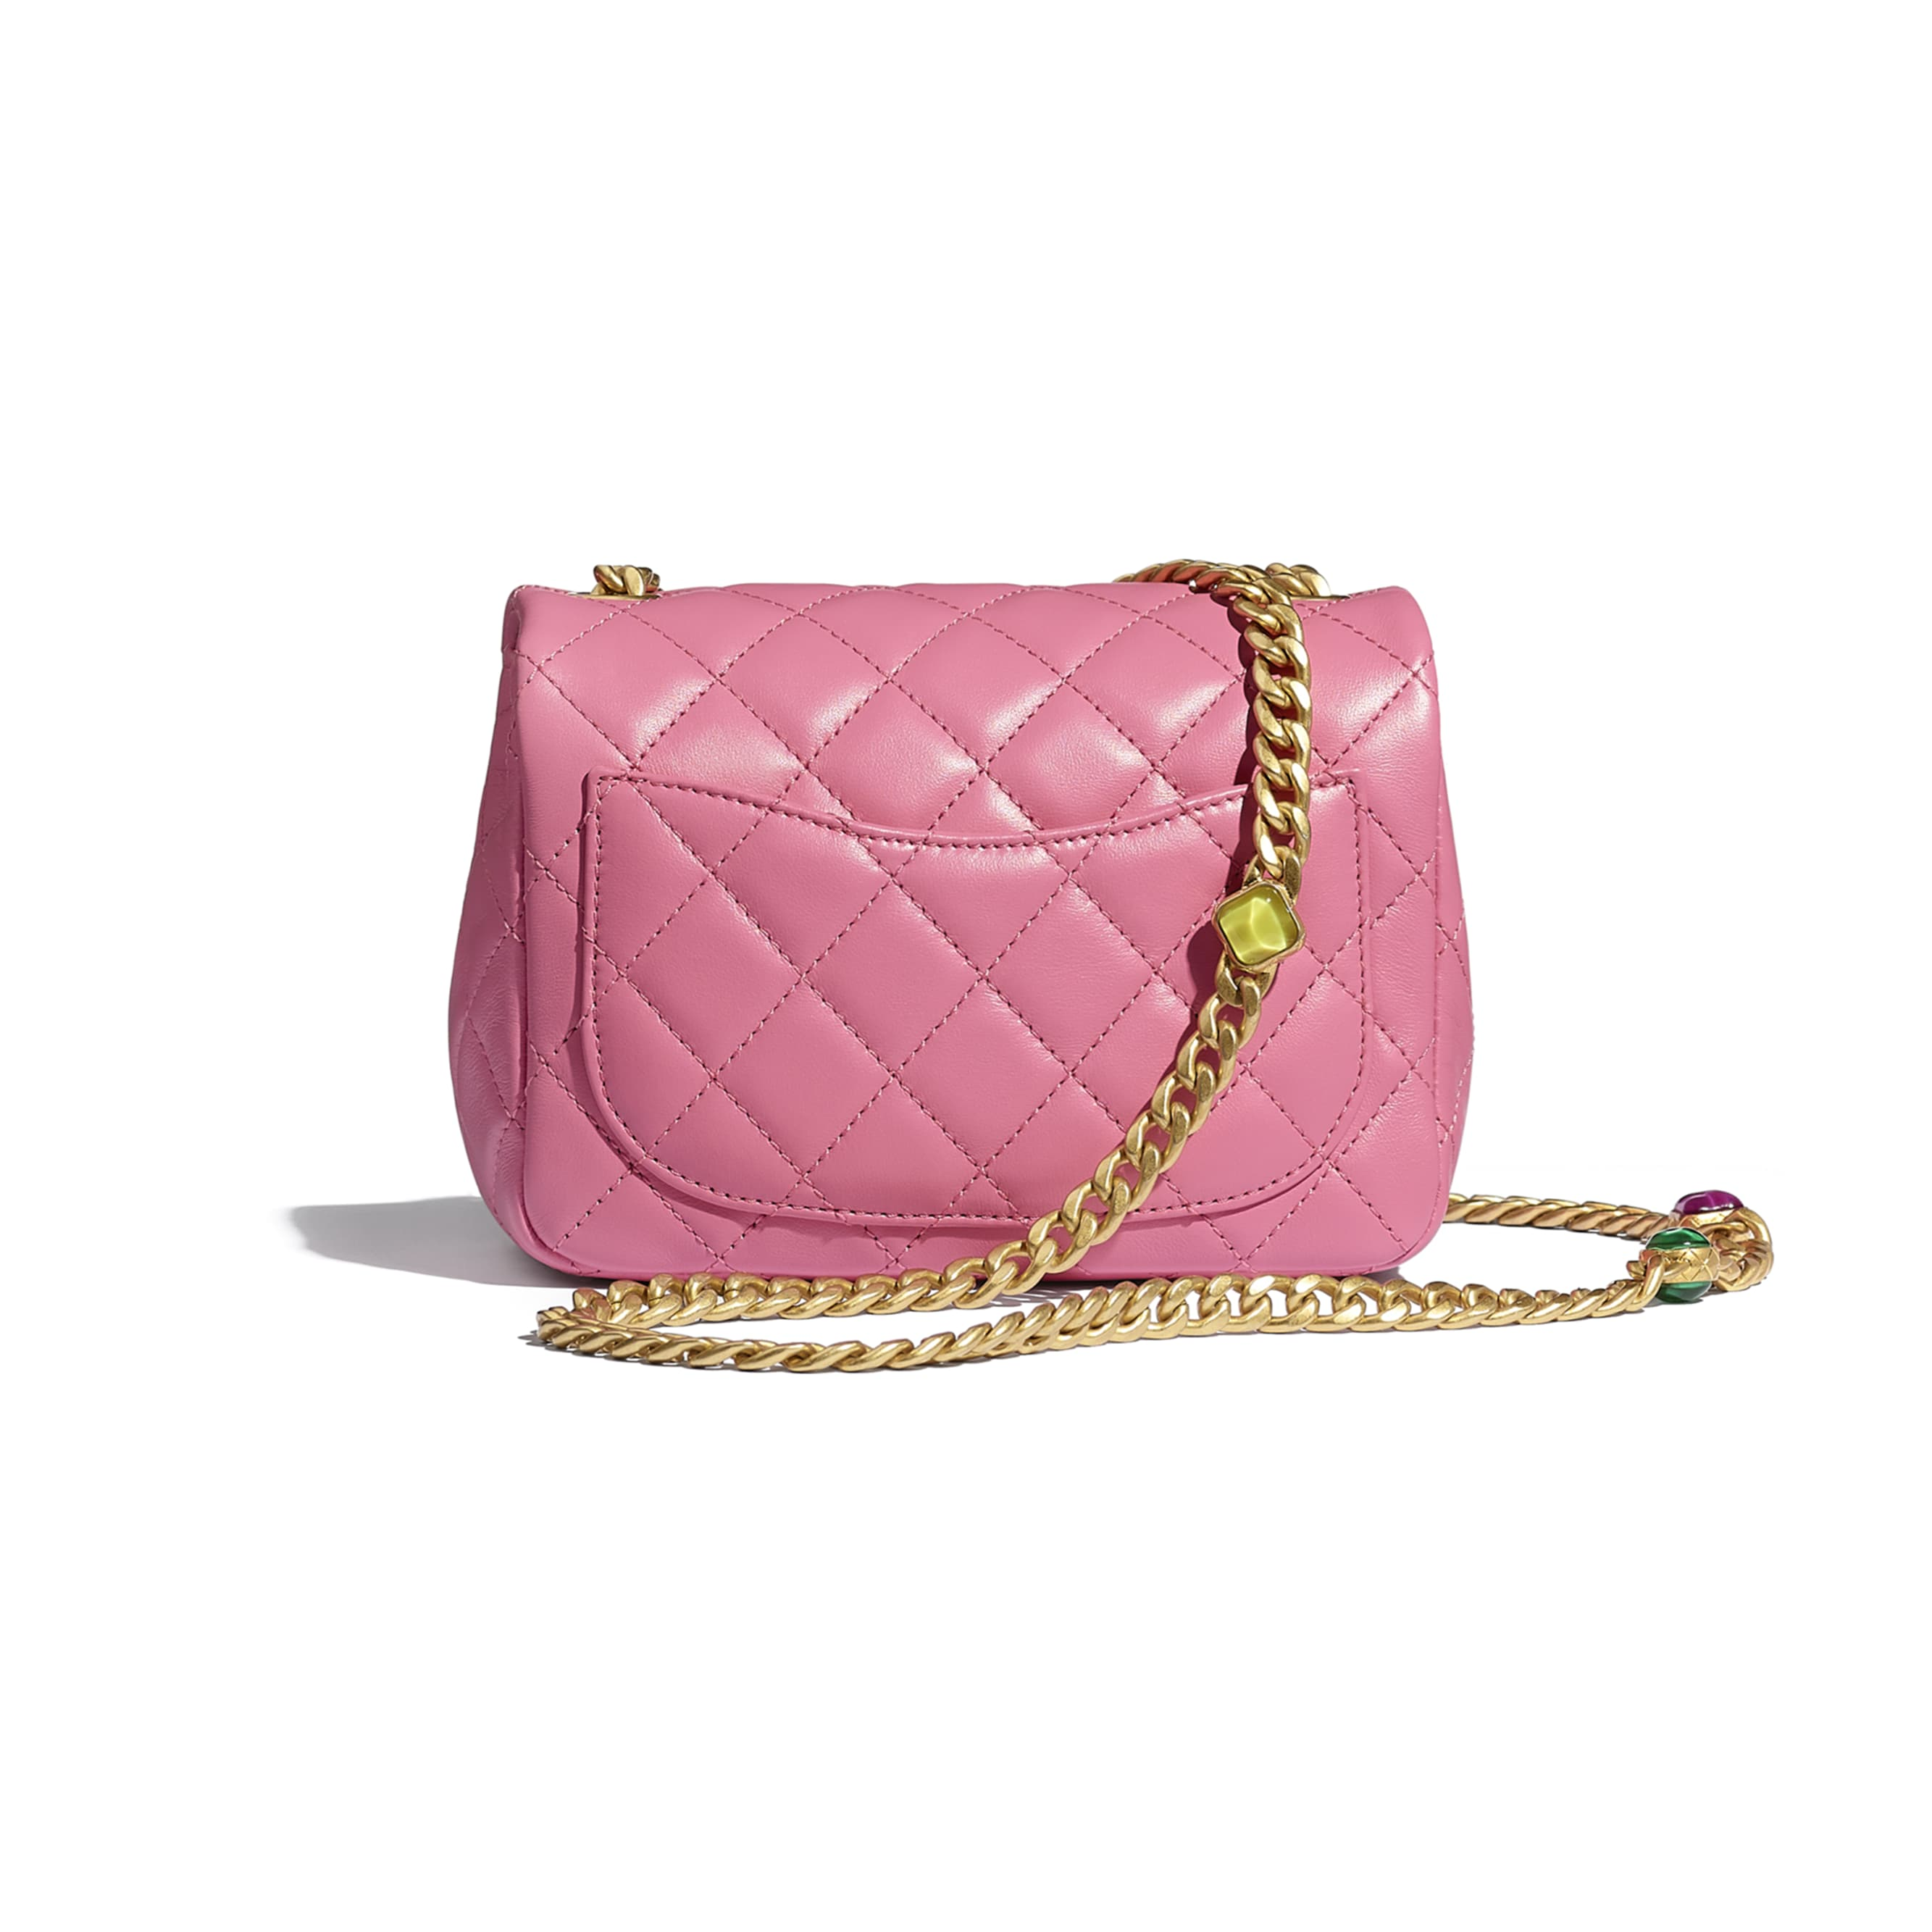 Flap Bag - Pink - Lambskin, Resin & Gold-Tone Metal - CHANEL - Alternative view - see standard sized version